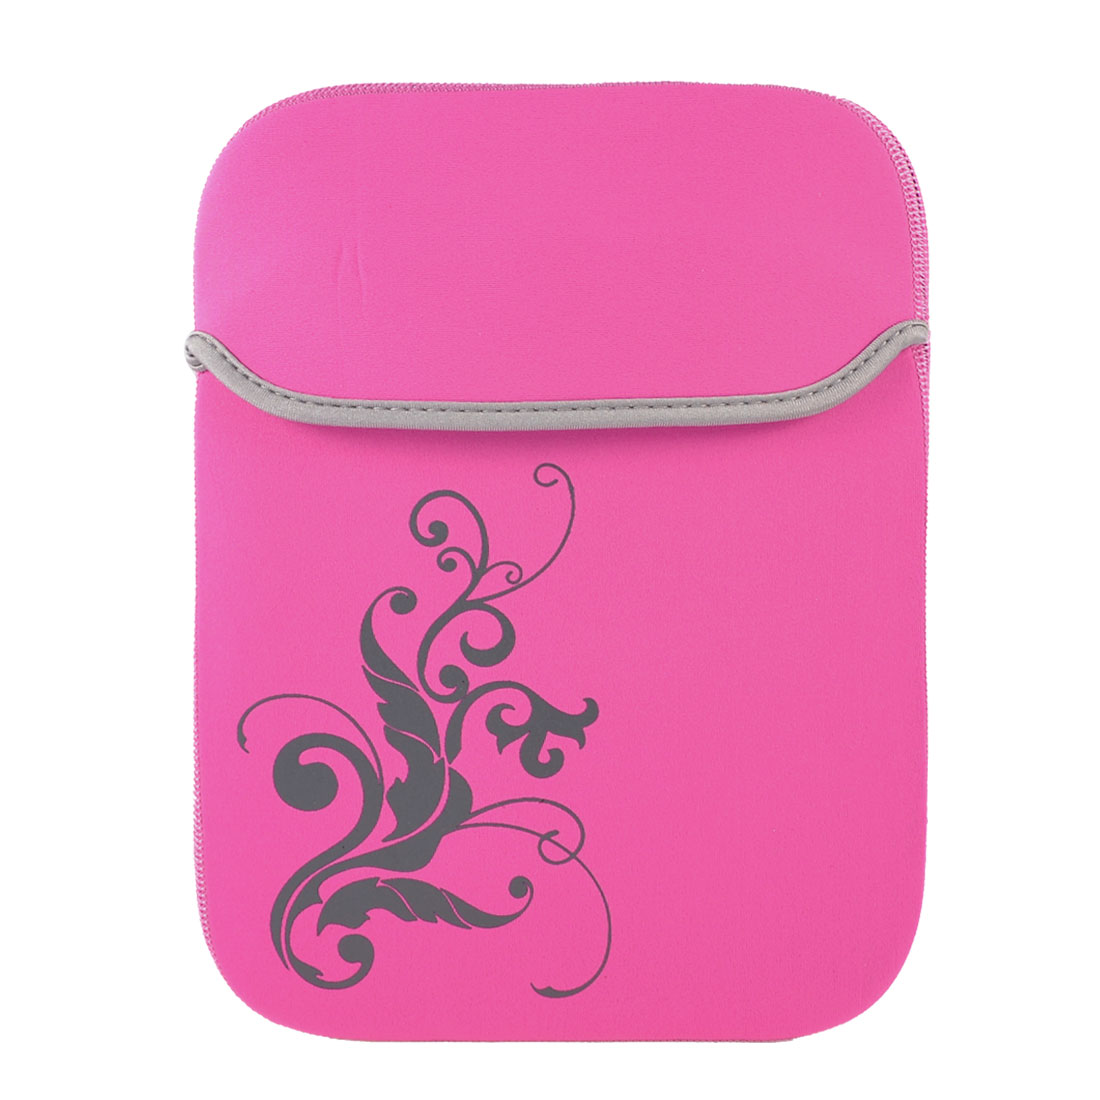 "10"" 10.1"" Tablet Netbook Laptop Flower Pink Neoprene Sleeve Bag Case Pouch"